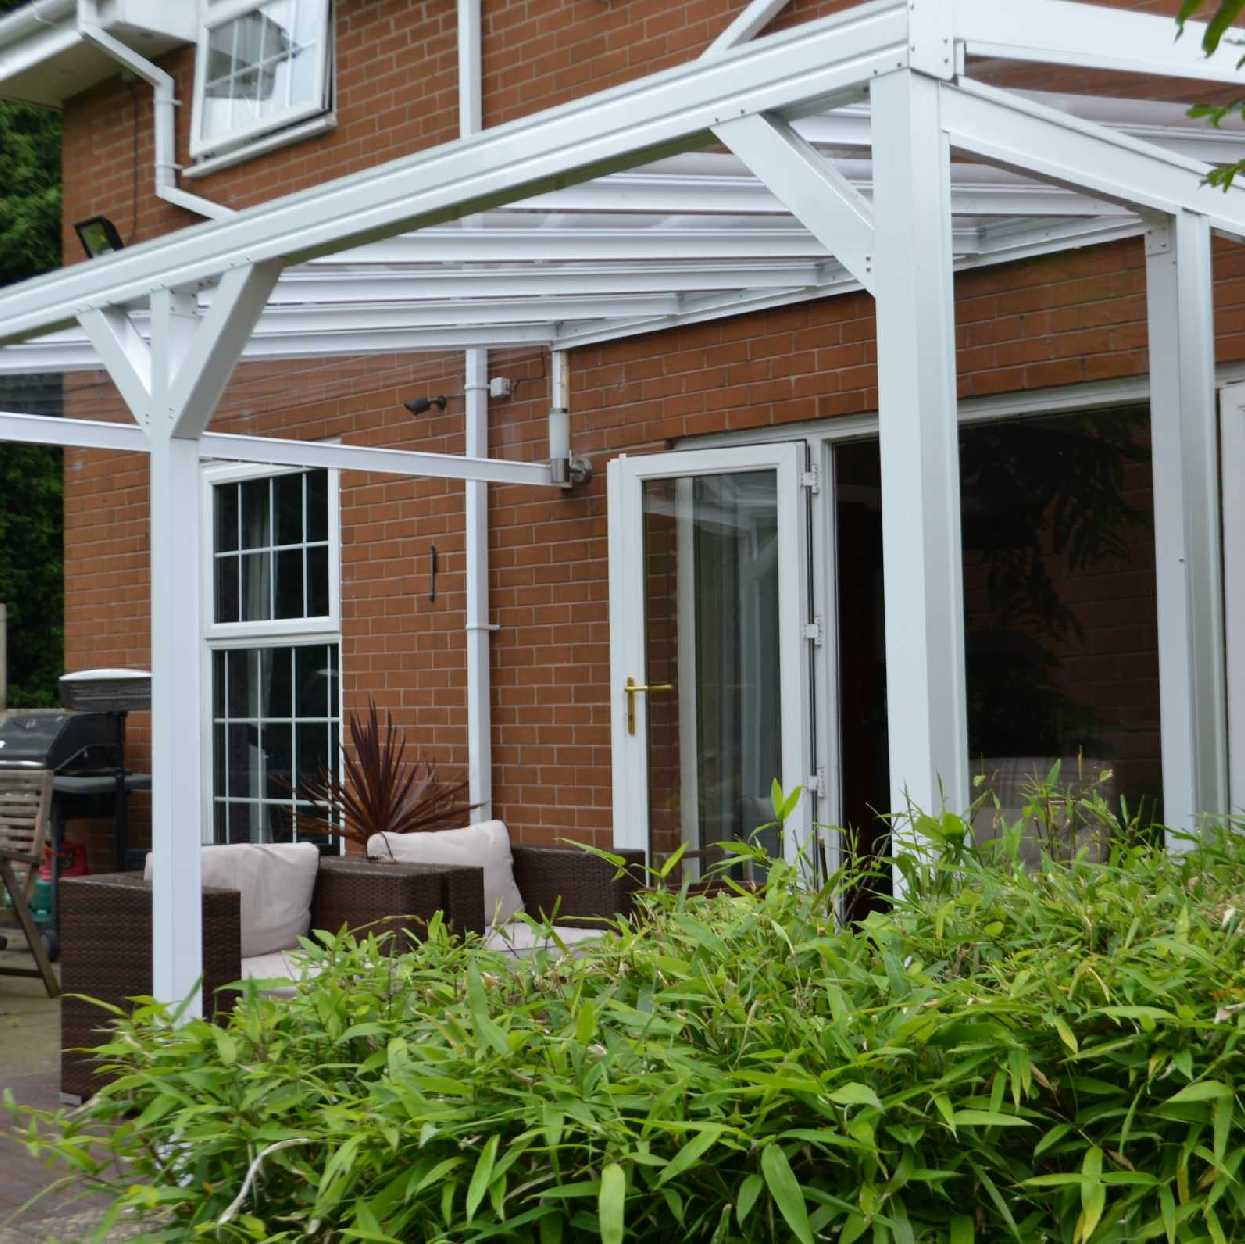 Omega Smart White Lean-To Canopy UNGLAZED for 6mm Glazing - 7.7m (W) x 1.5m (P), (4) Supporting Posts from Omega Build